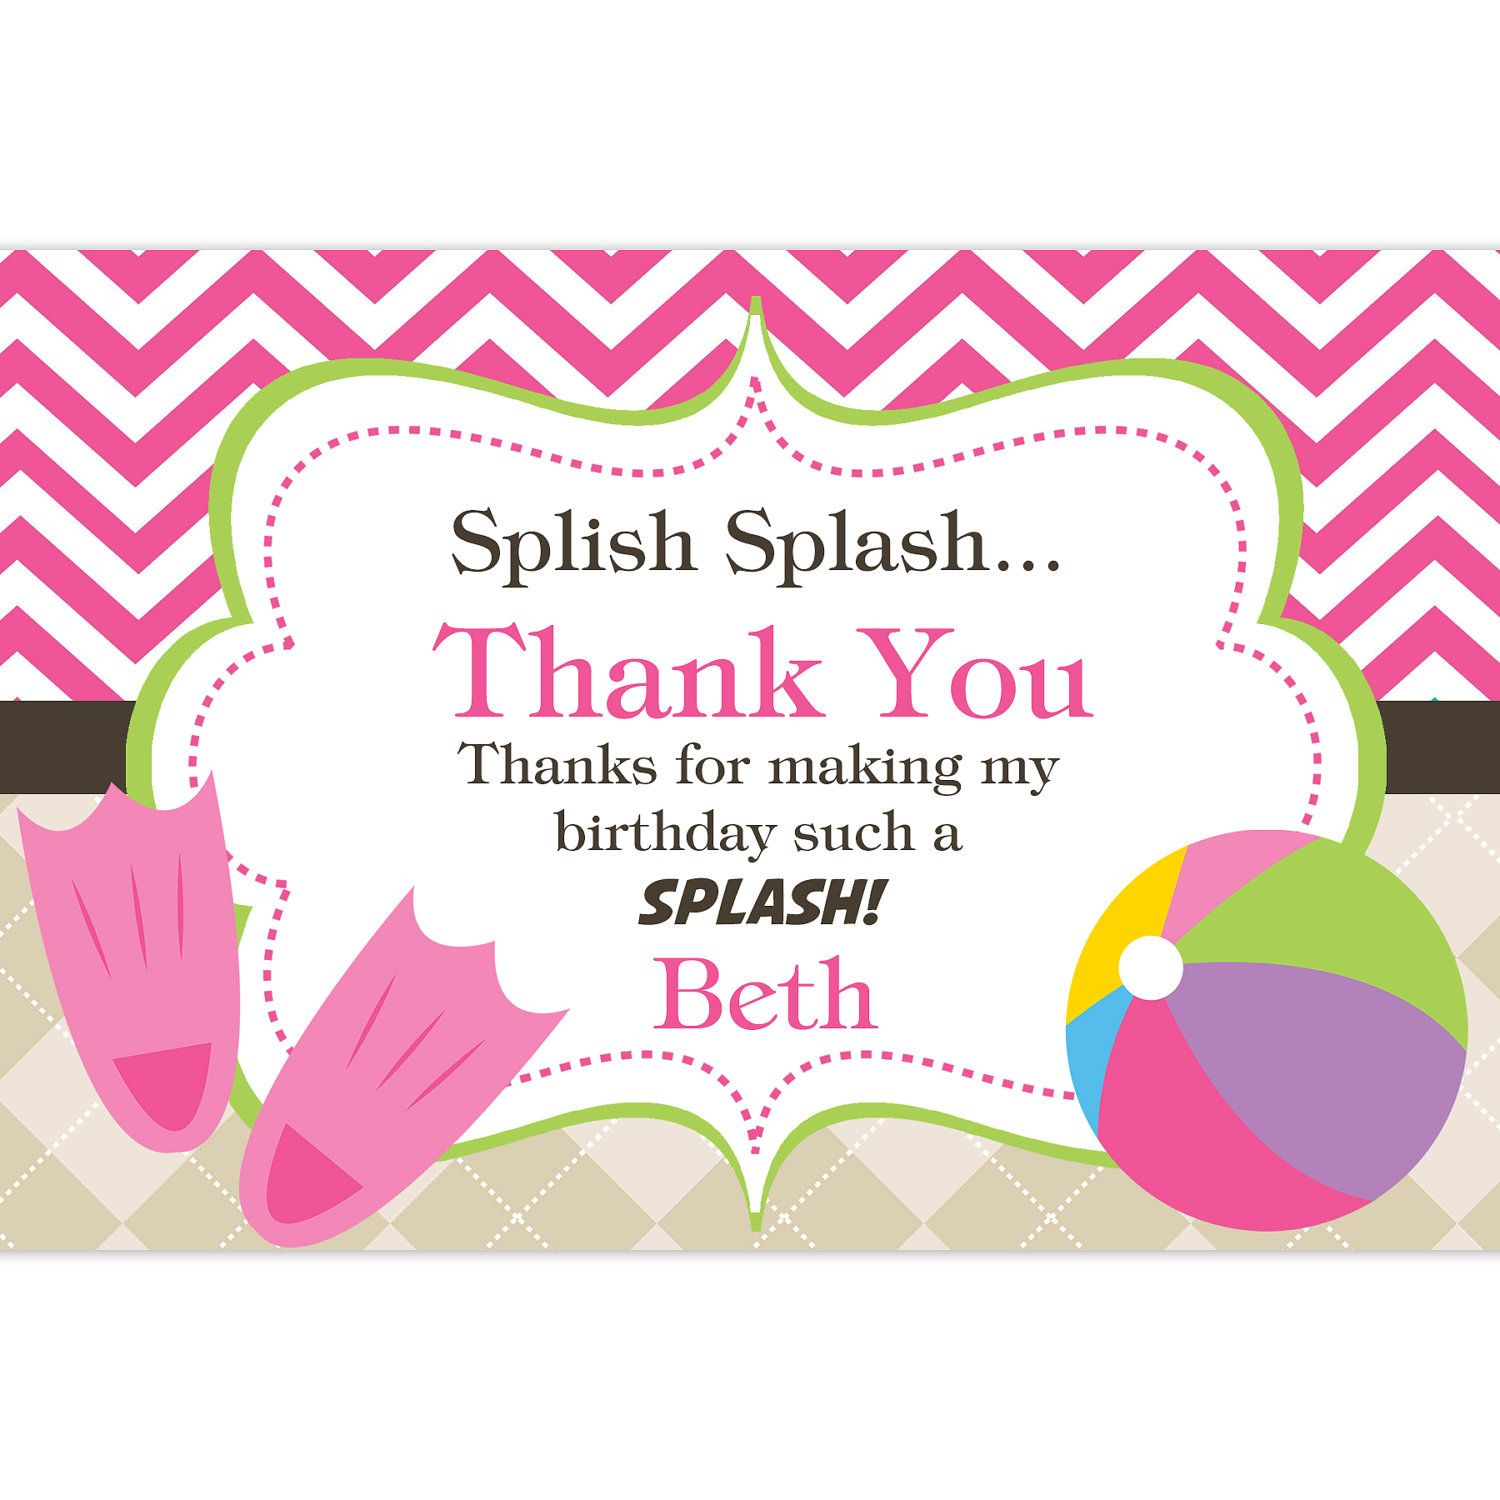 Pool Party Thank You Card Hot Pink Chevron and Tan Argyle Beach